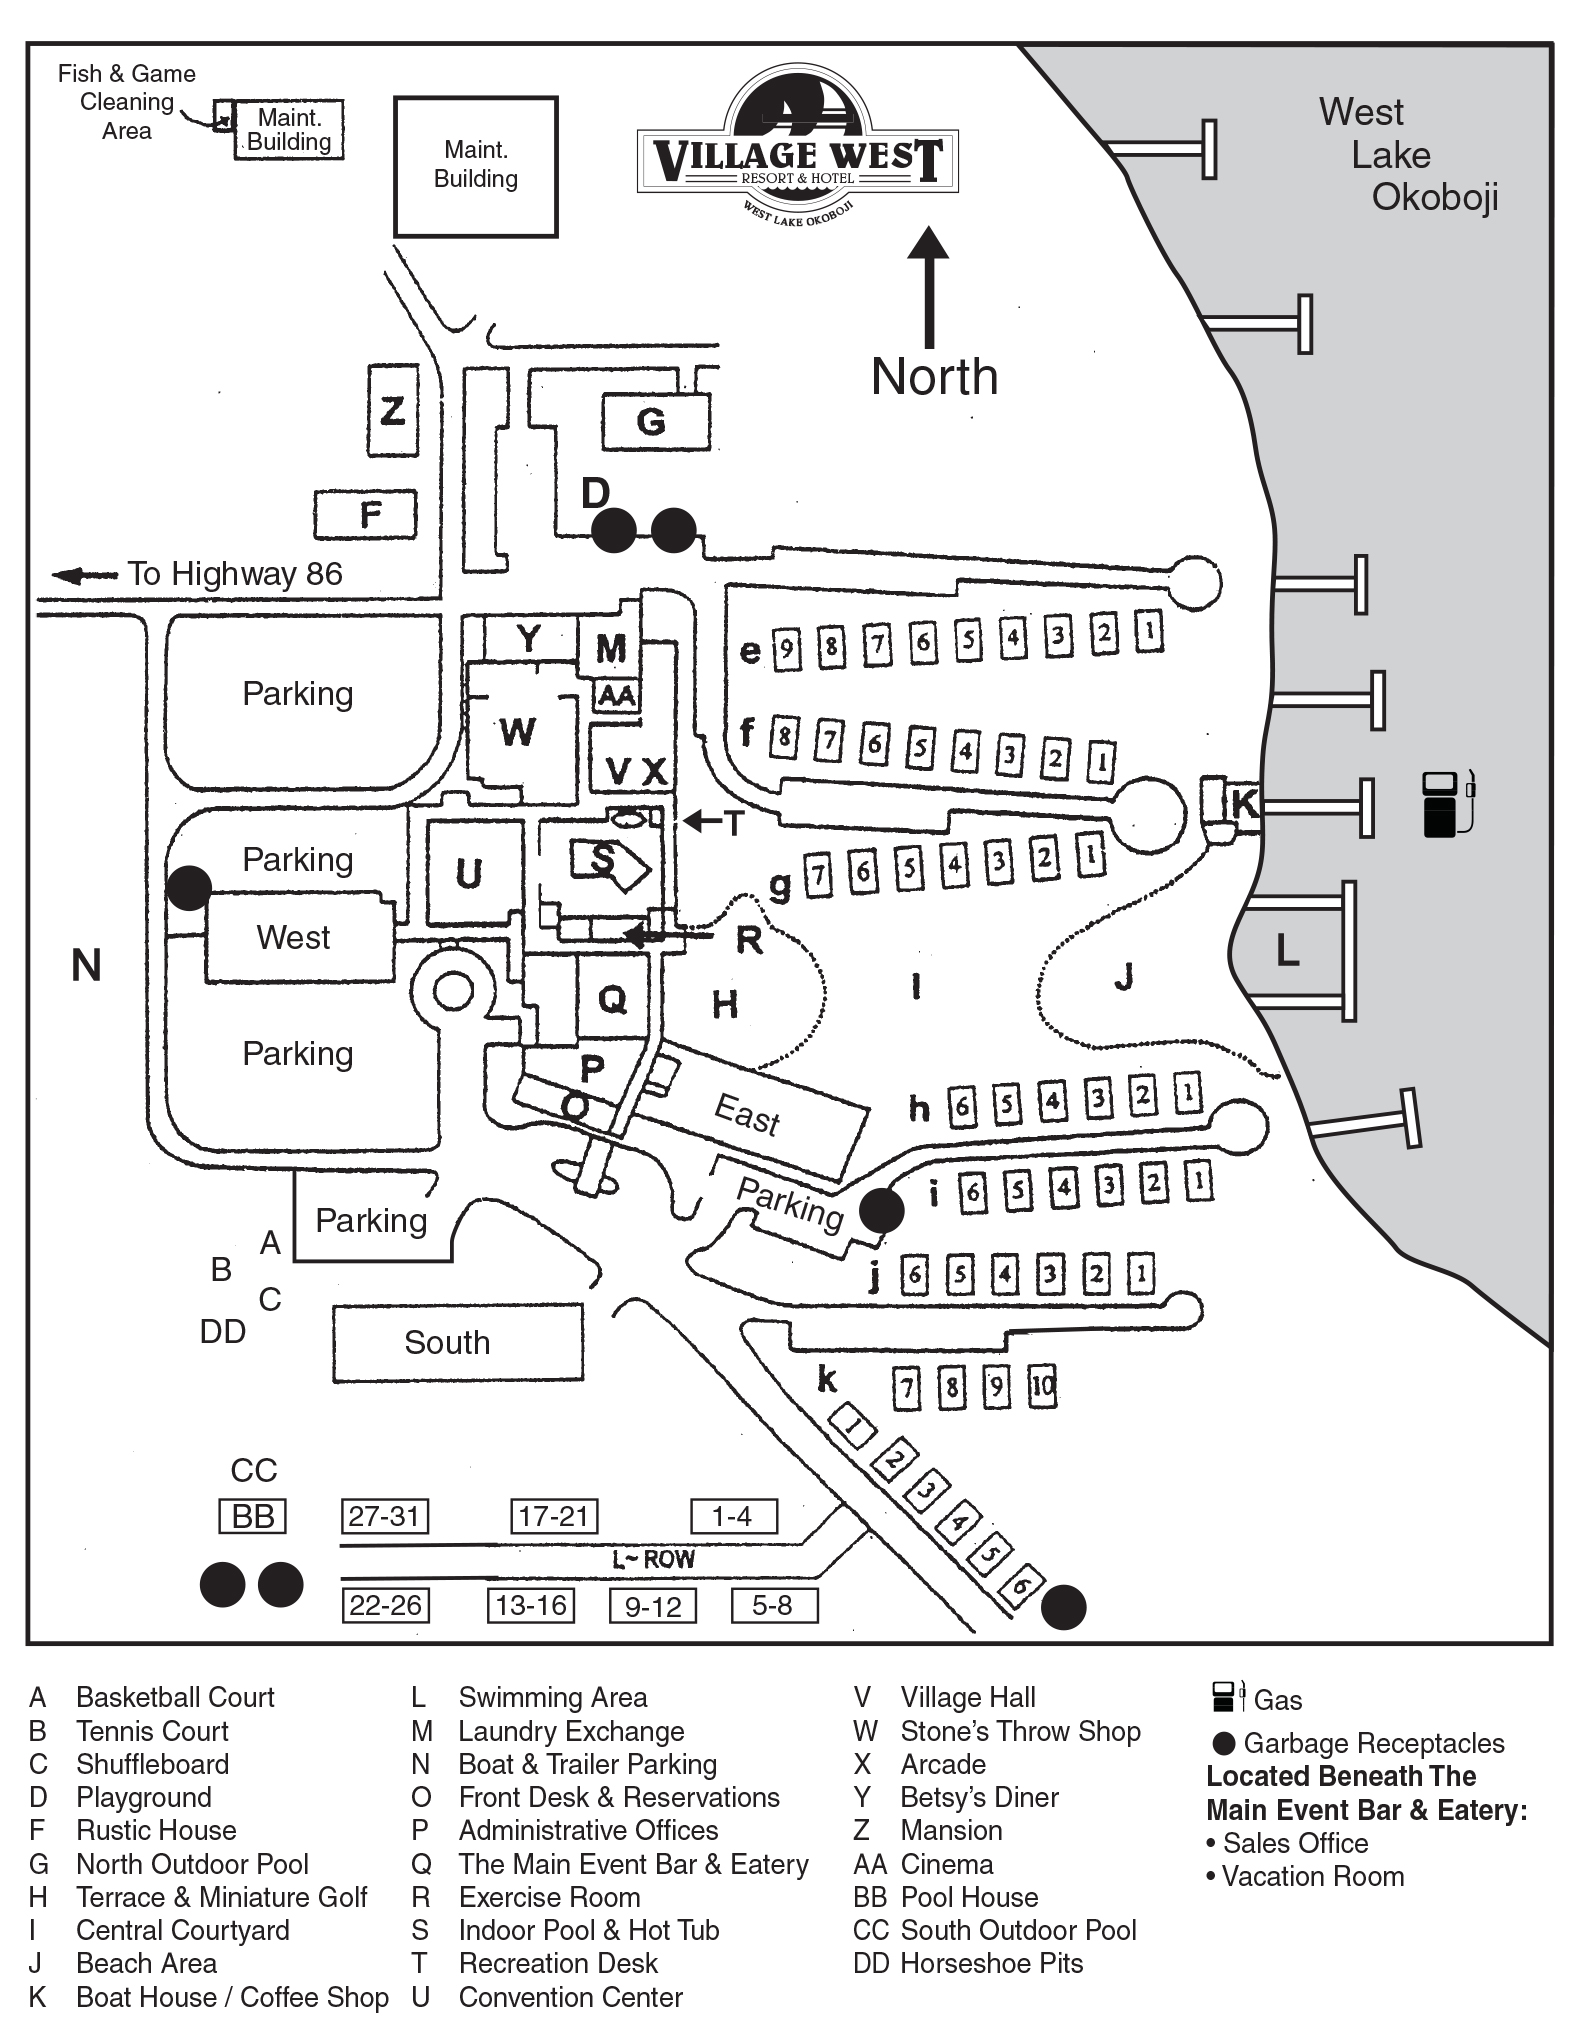 Village West Map and Key